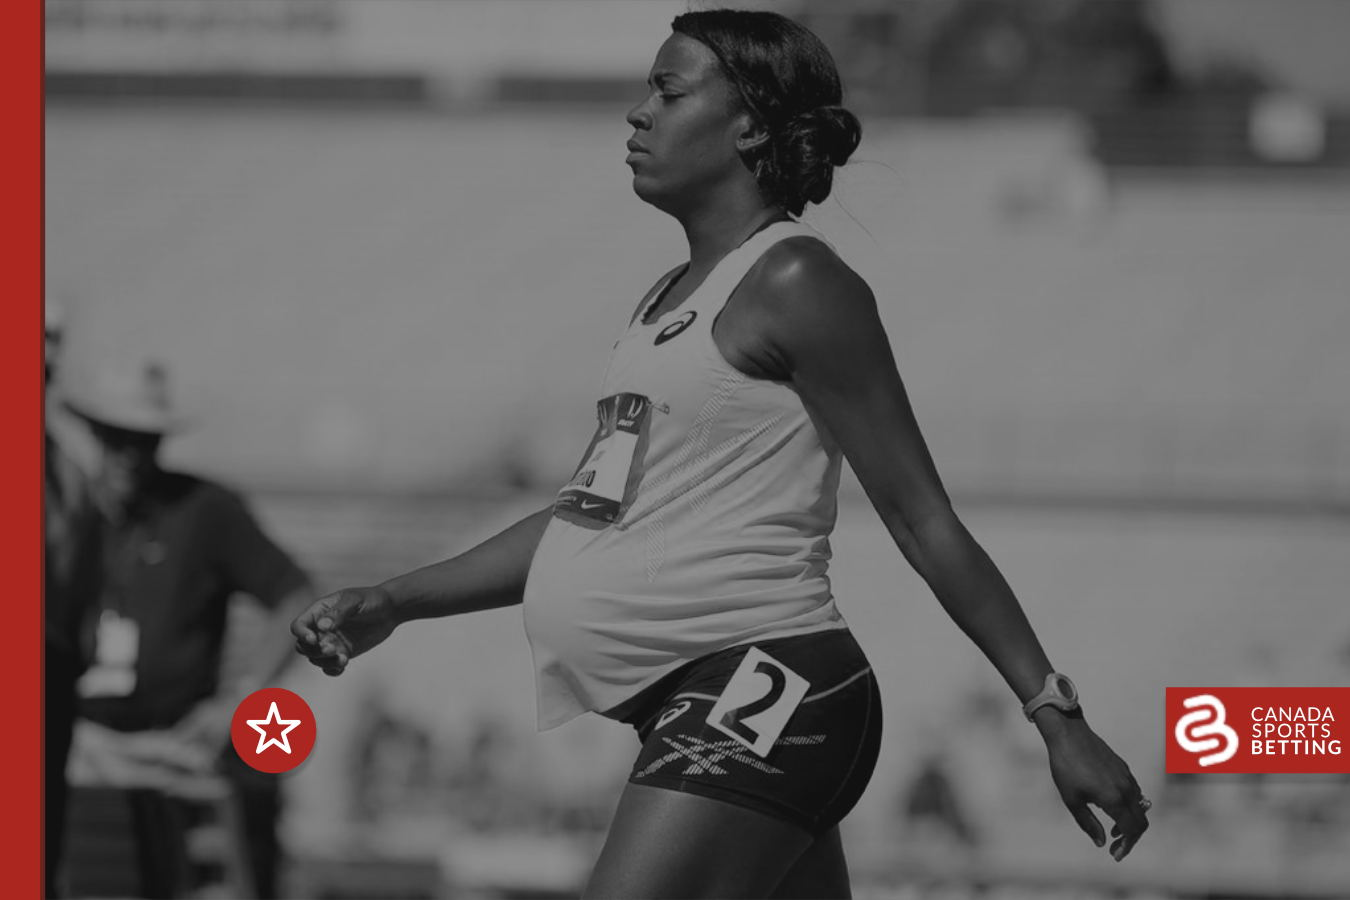 Pregnant Athletes: Competing While Carrying A Baby